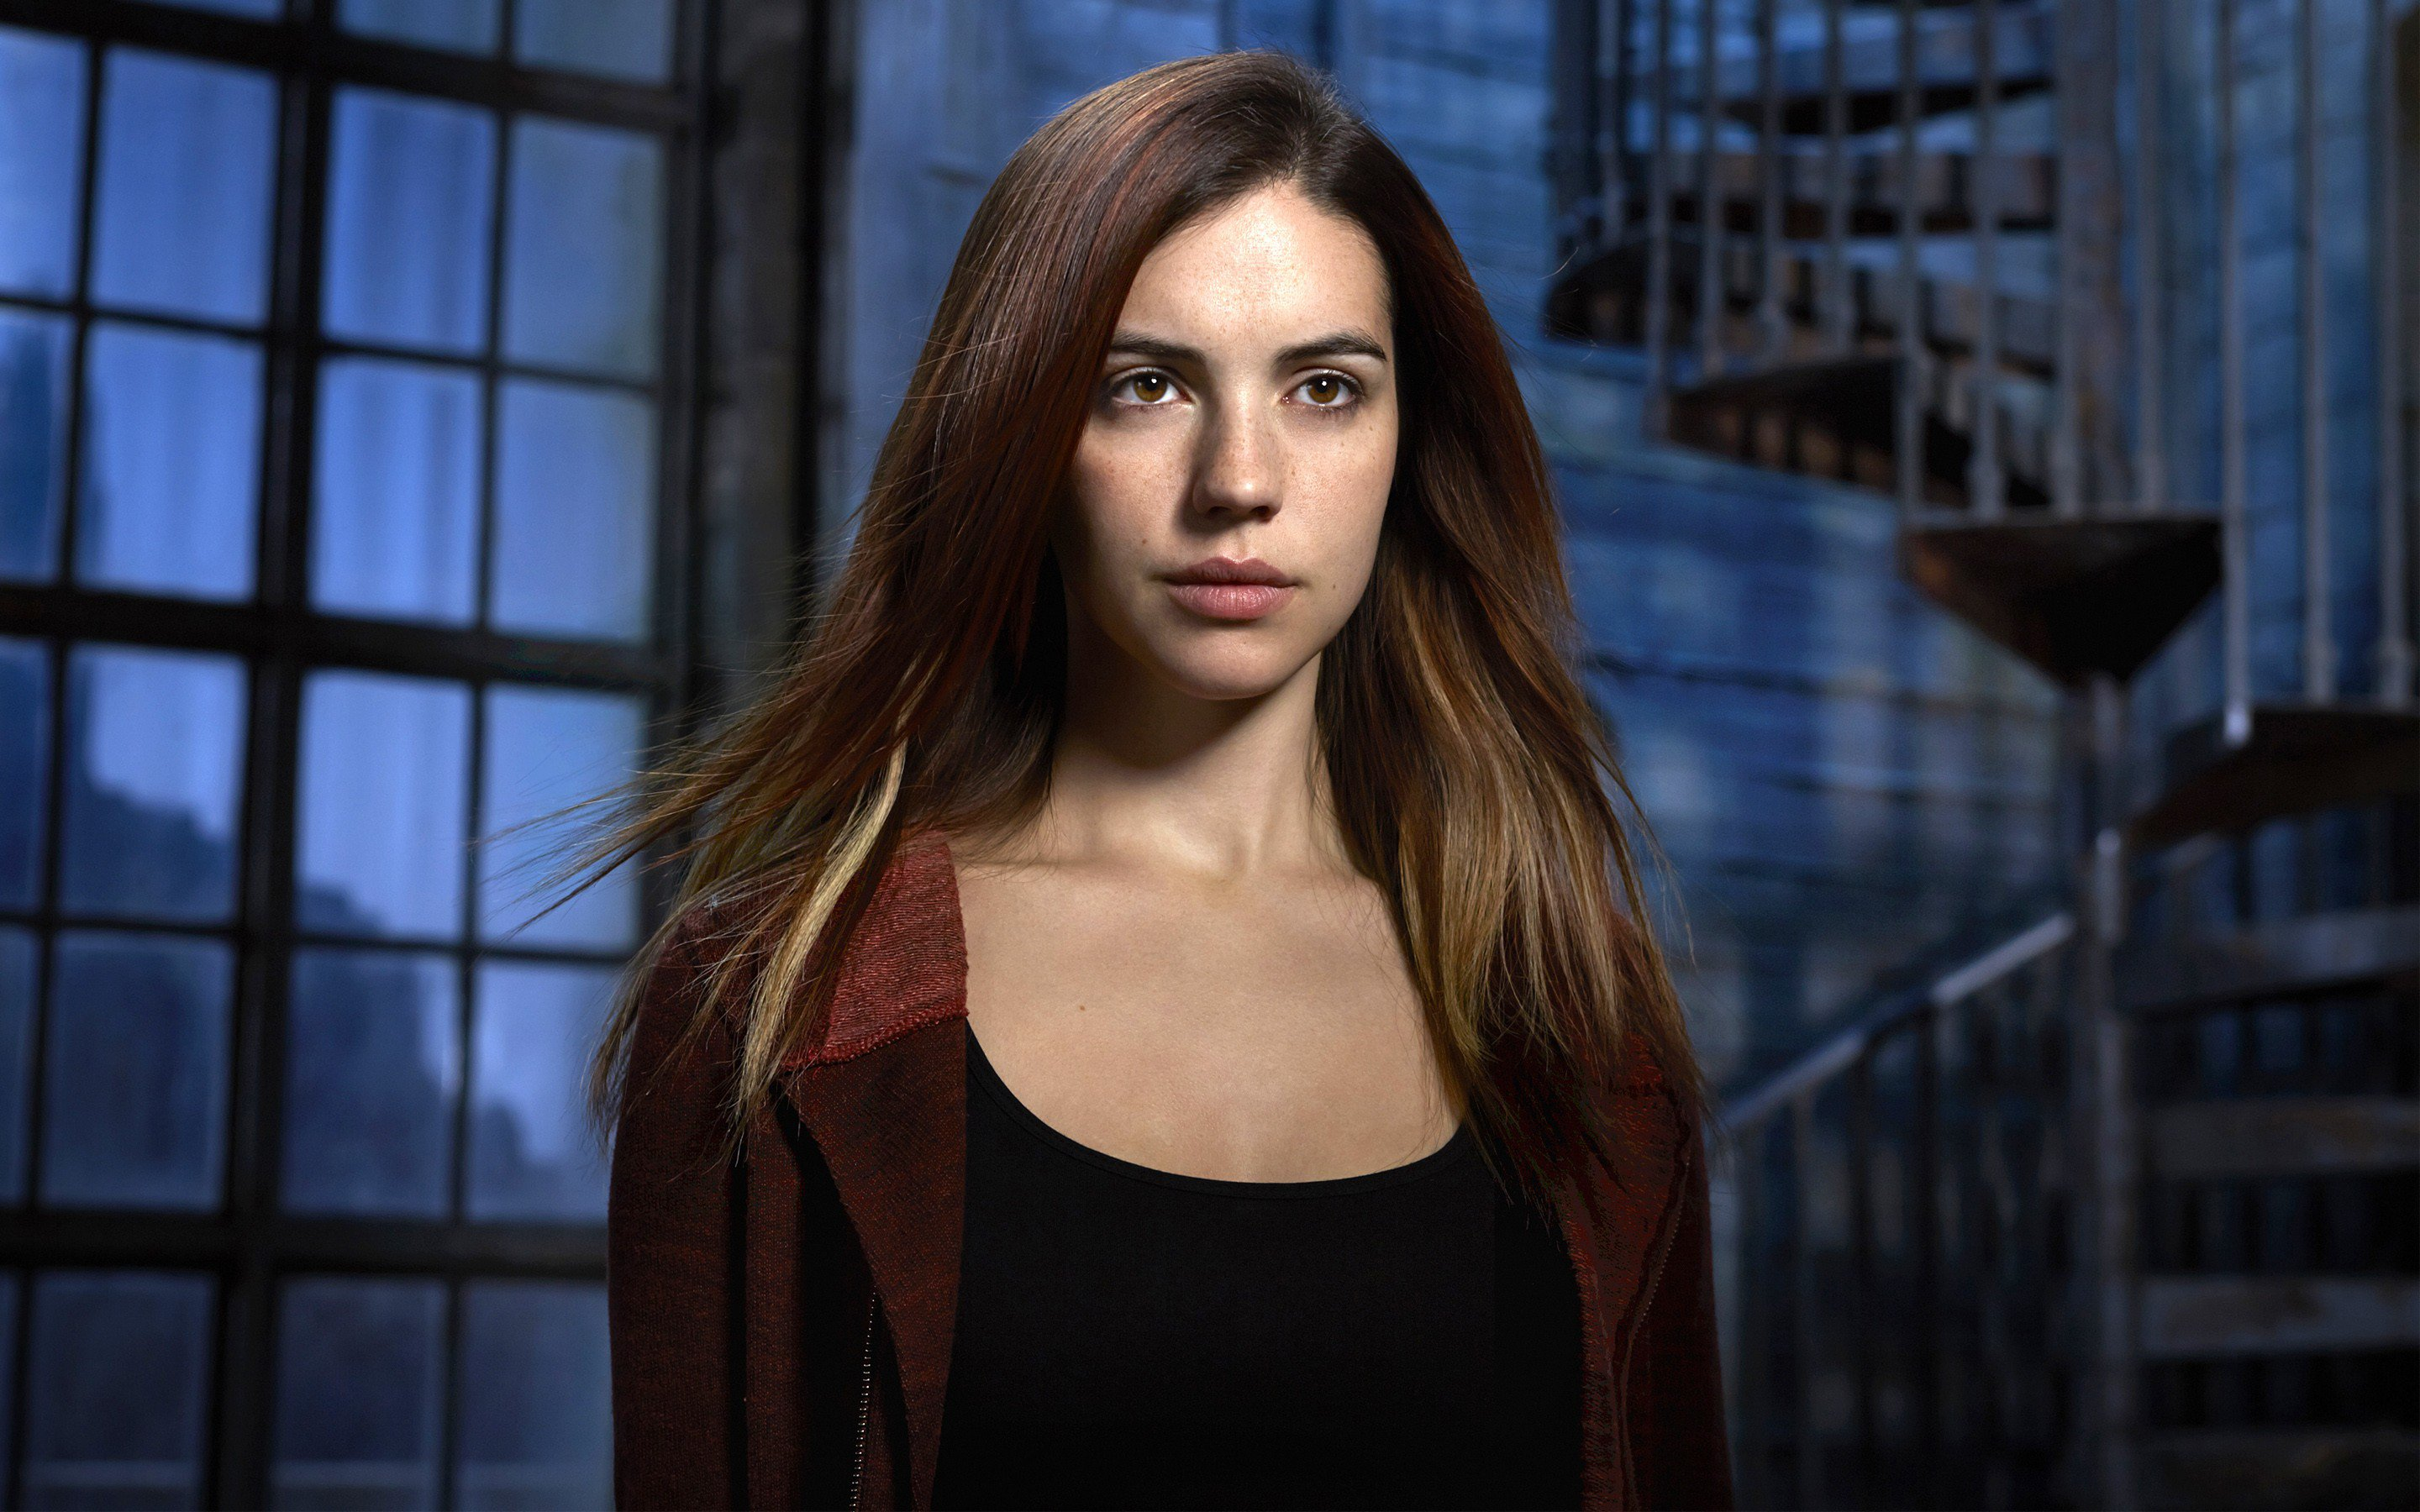 adelaide kane hd celebrities 4k wallpapers images backgrounds photos and pictures. Black Bedroom Furniture Sets. Home Design Ideas